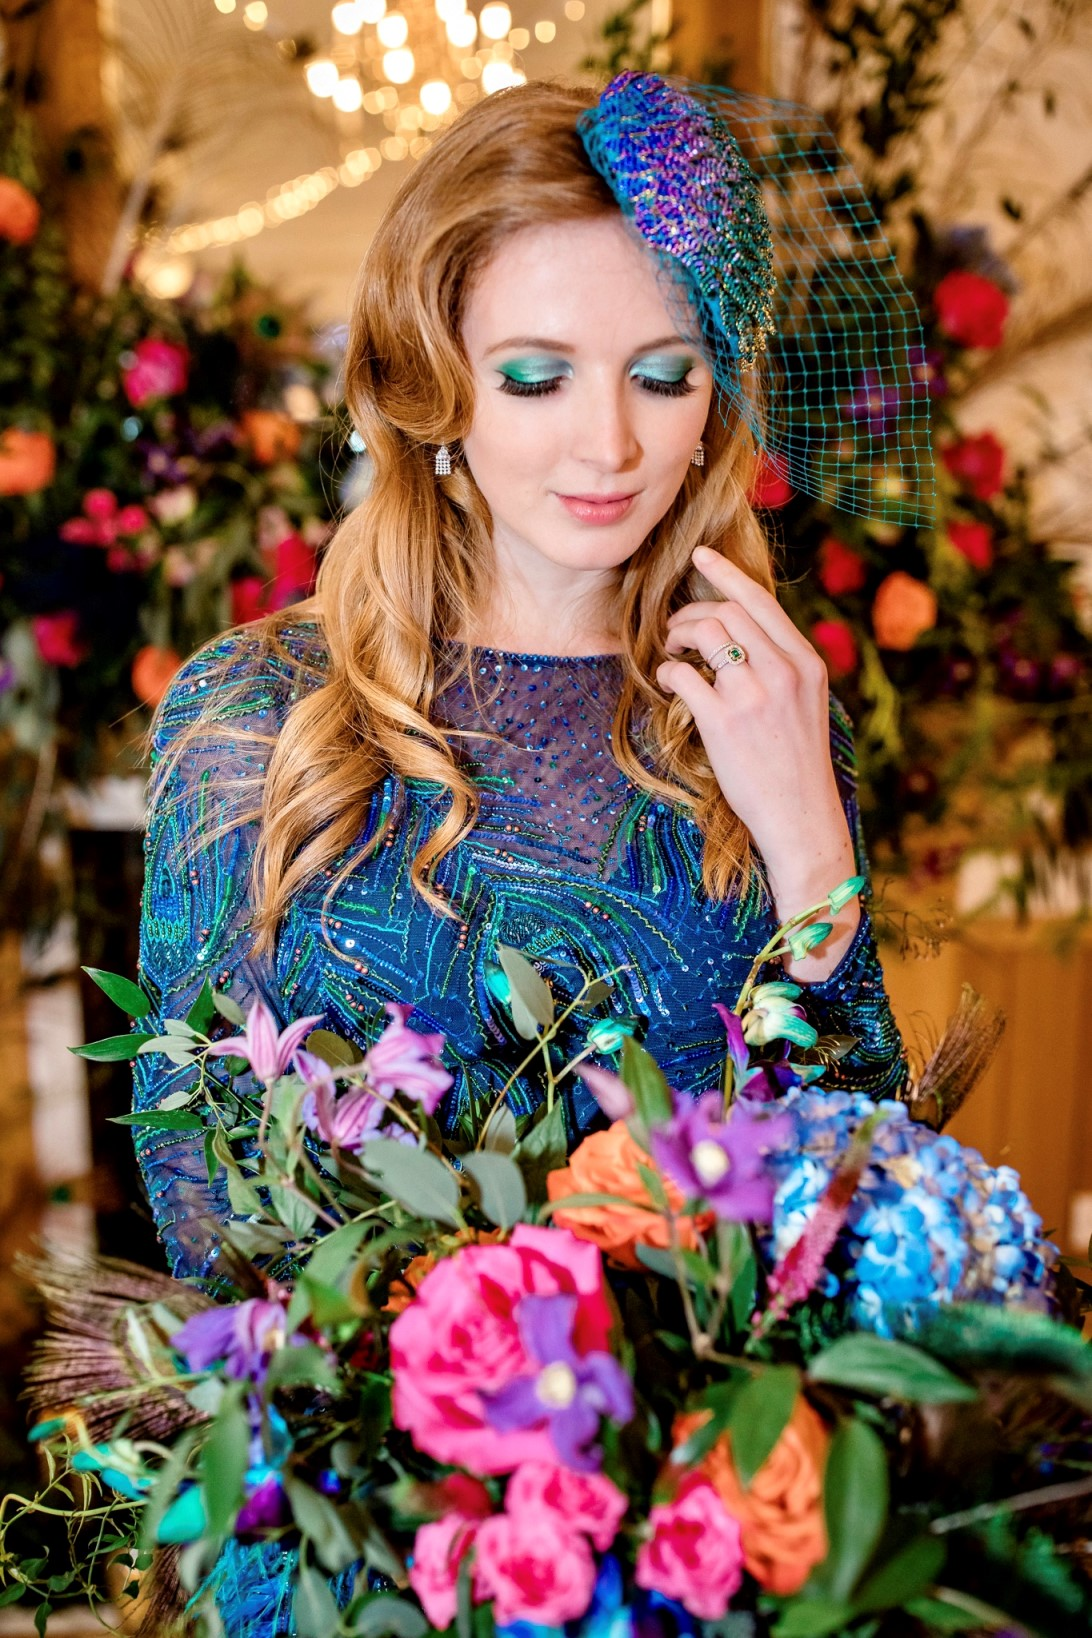 Peacock Wedding-Unique Wedding Dress- Peacock Wedding Dress- Coloured Wedding Dress- Alternative Wedding Dress- colourful wedding flowers